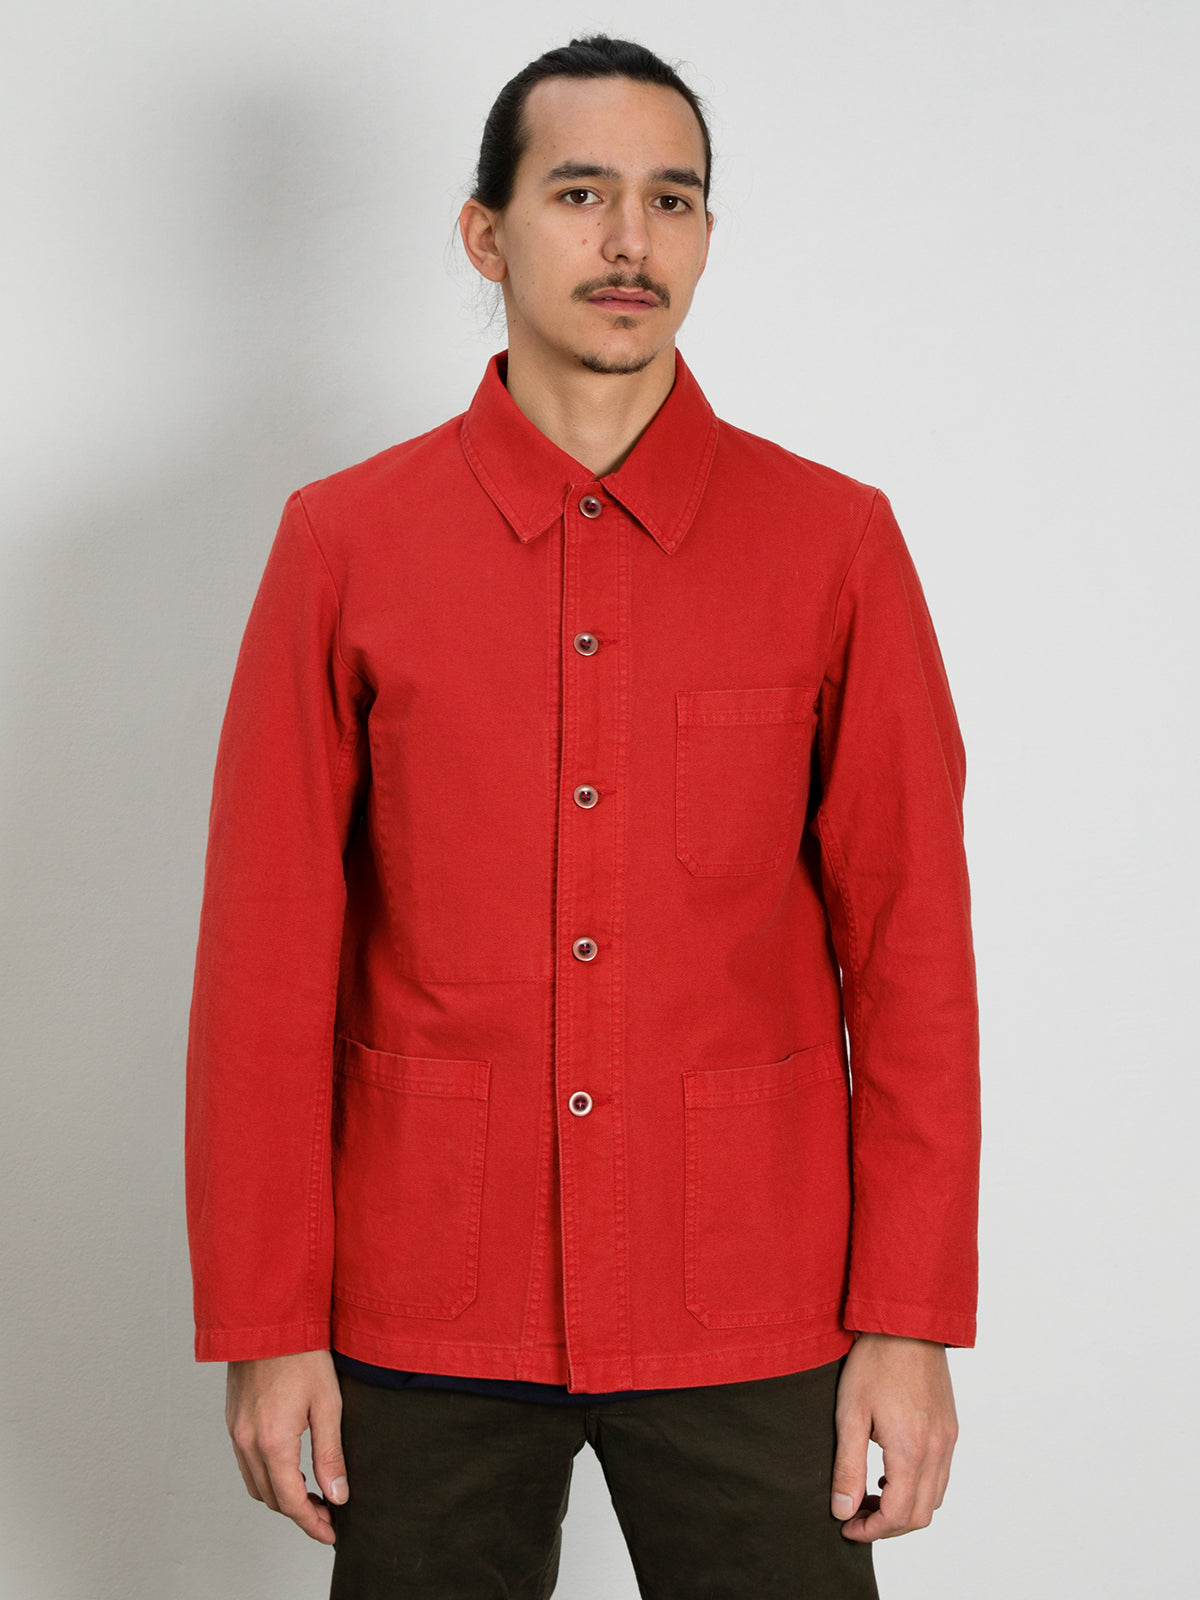 Workwear Jacket 5C in Twill Fabric - Poppy